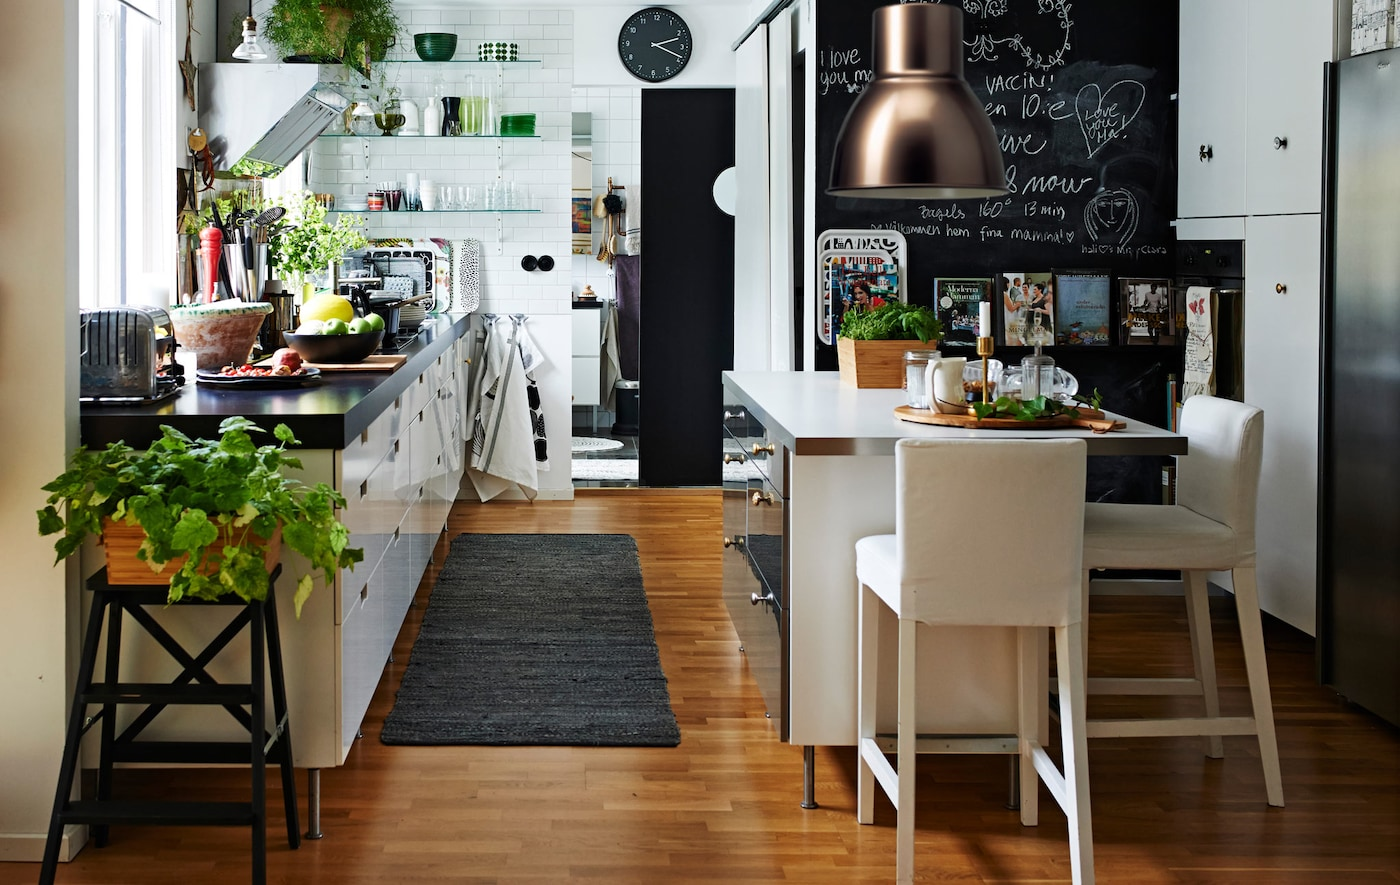 Here's a modern white kitchen with island and open storage.